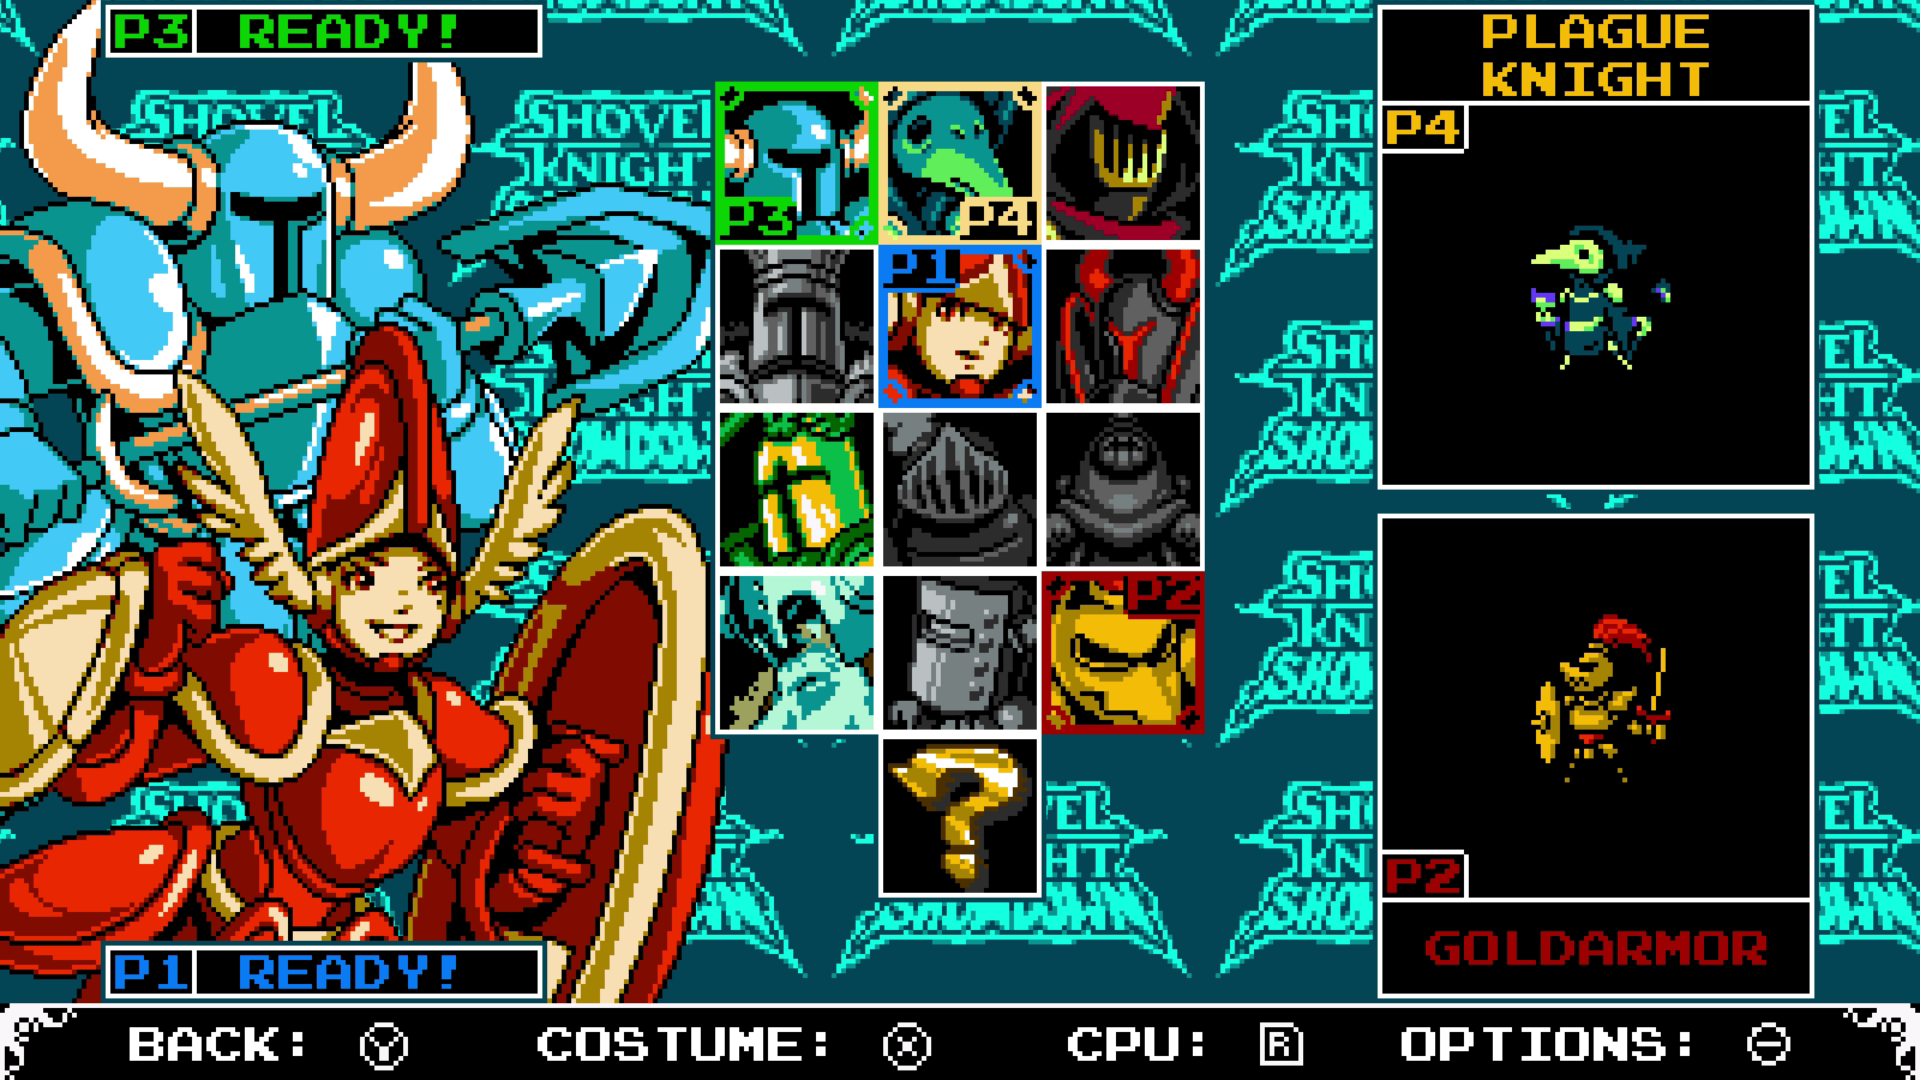 Shovel Knight Is Not Done Yacht Club Games On The Road To King Of Cards And Beyond Usgamer